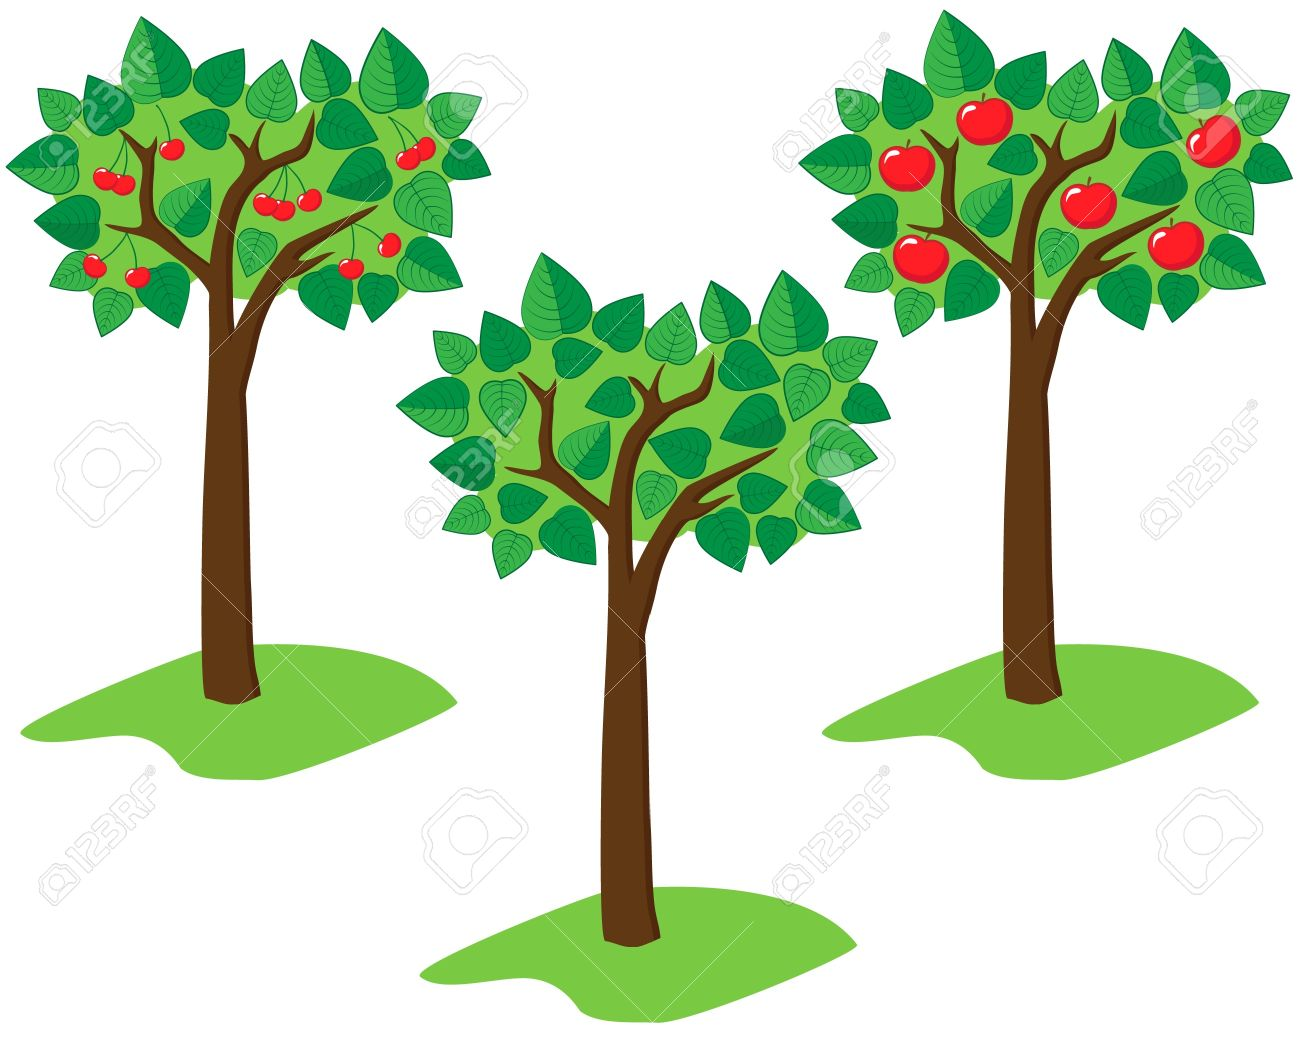 91 485 fruit tree cliparts stock vector and royalty free fruit